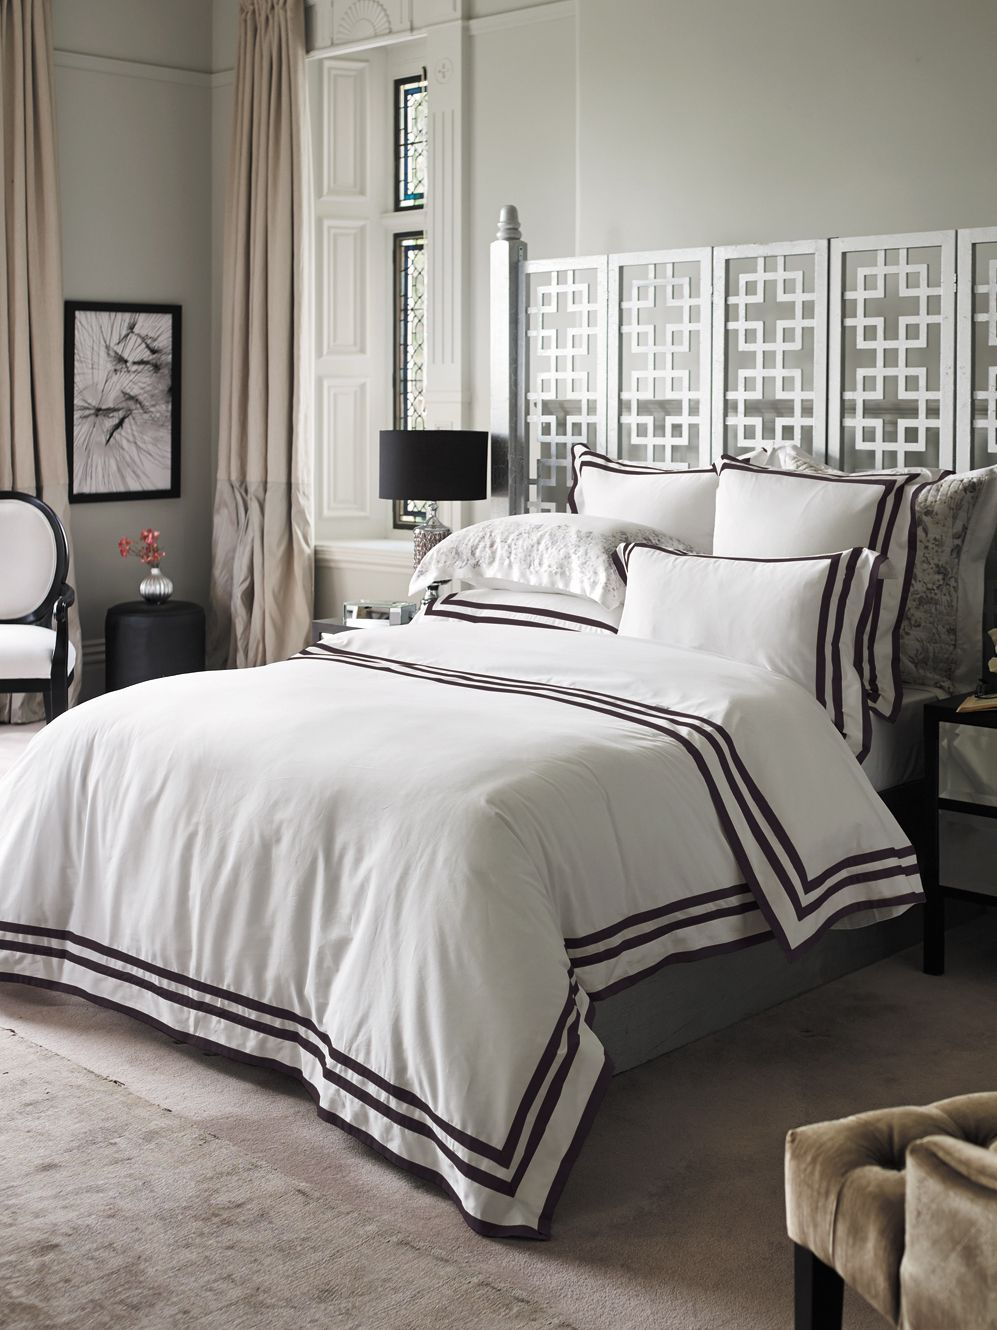 Holroyd ebony king fitted sheet timeless look